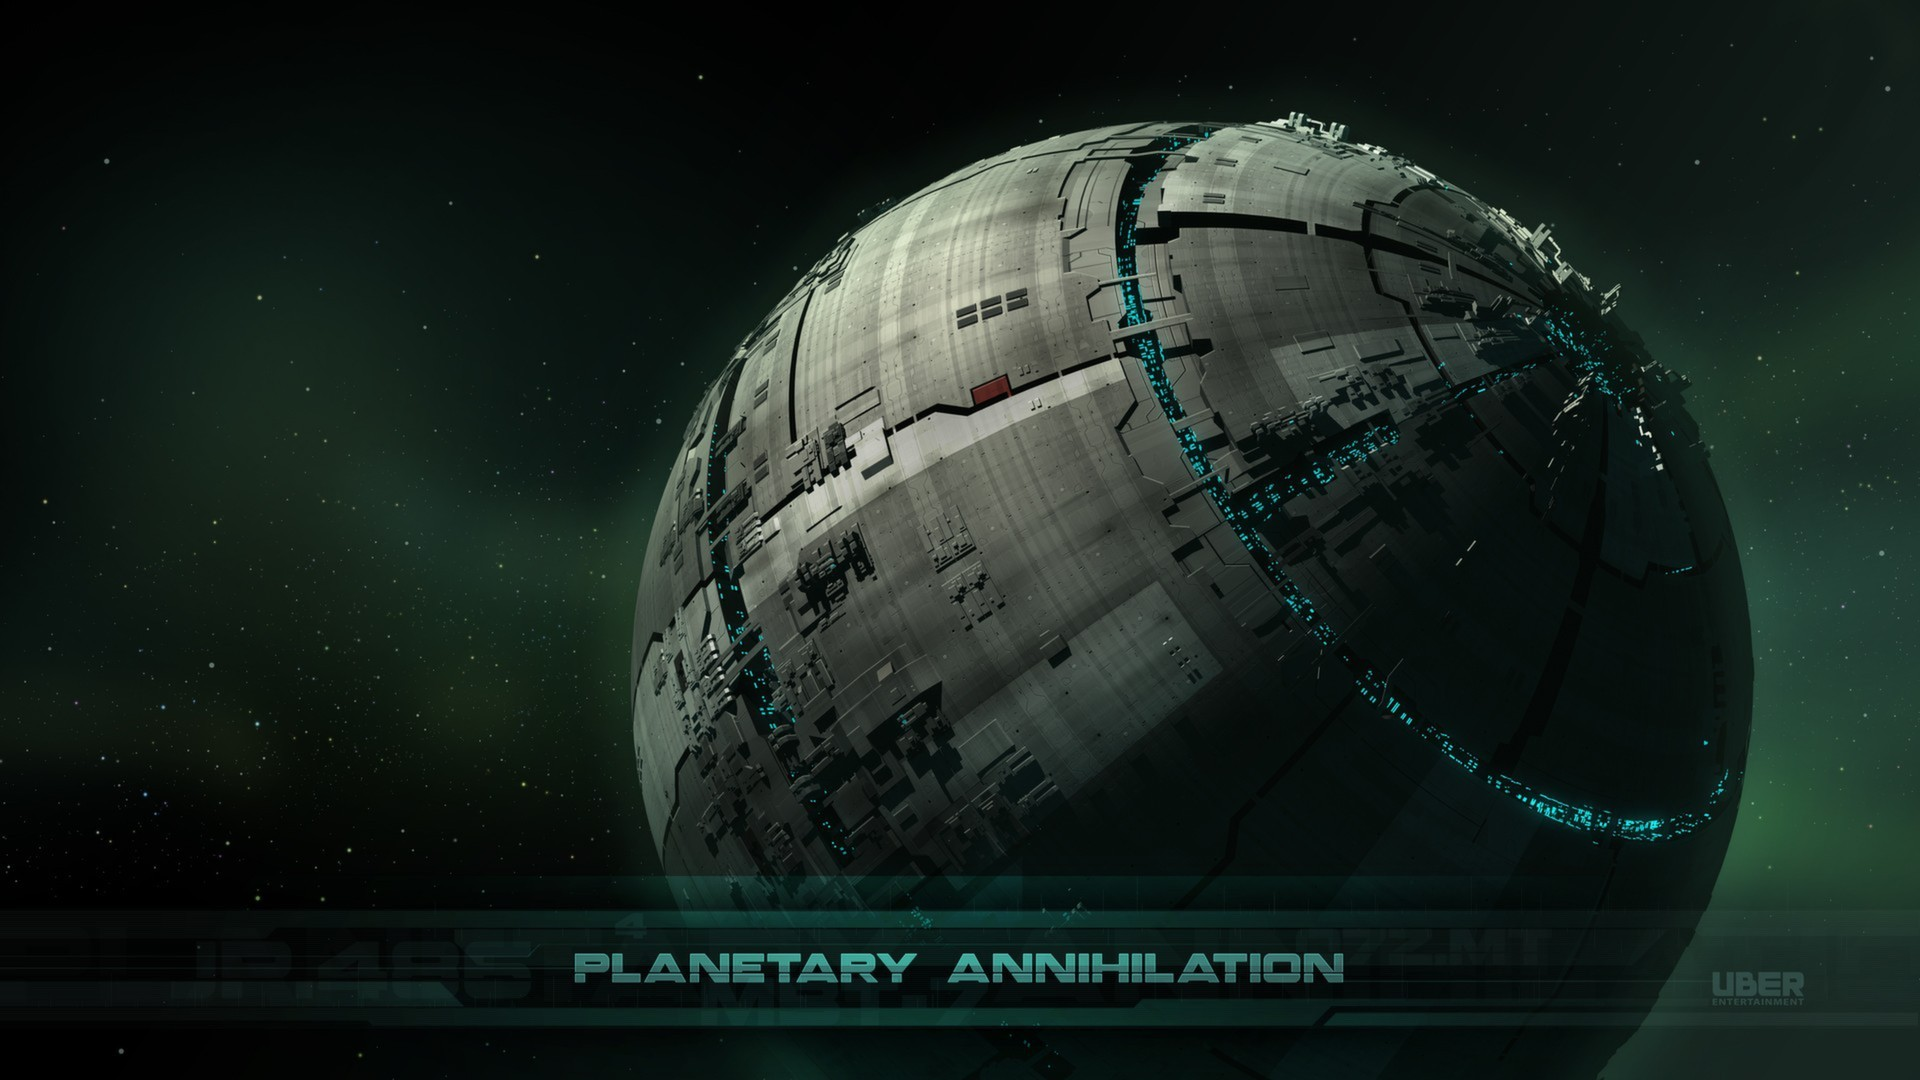 wallpaper construction of planet spaceship in deep space.